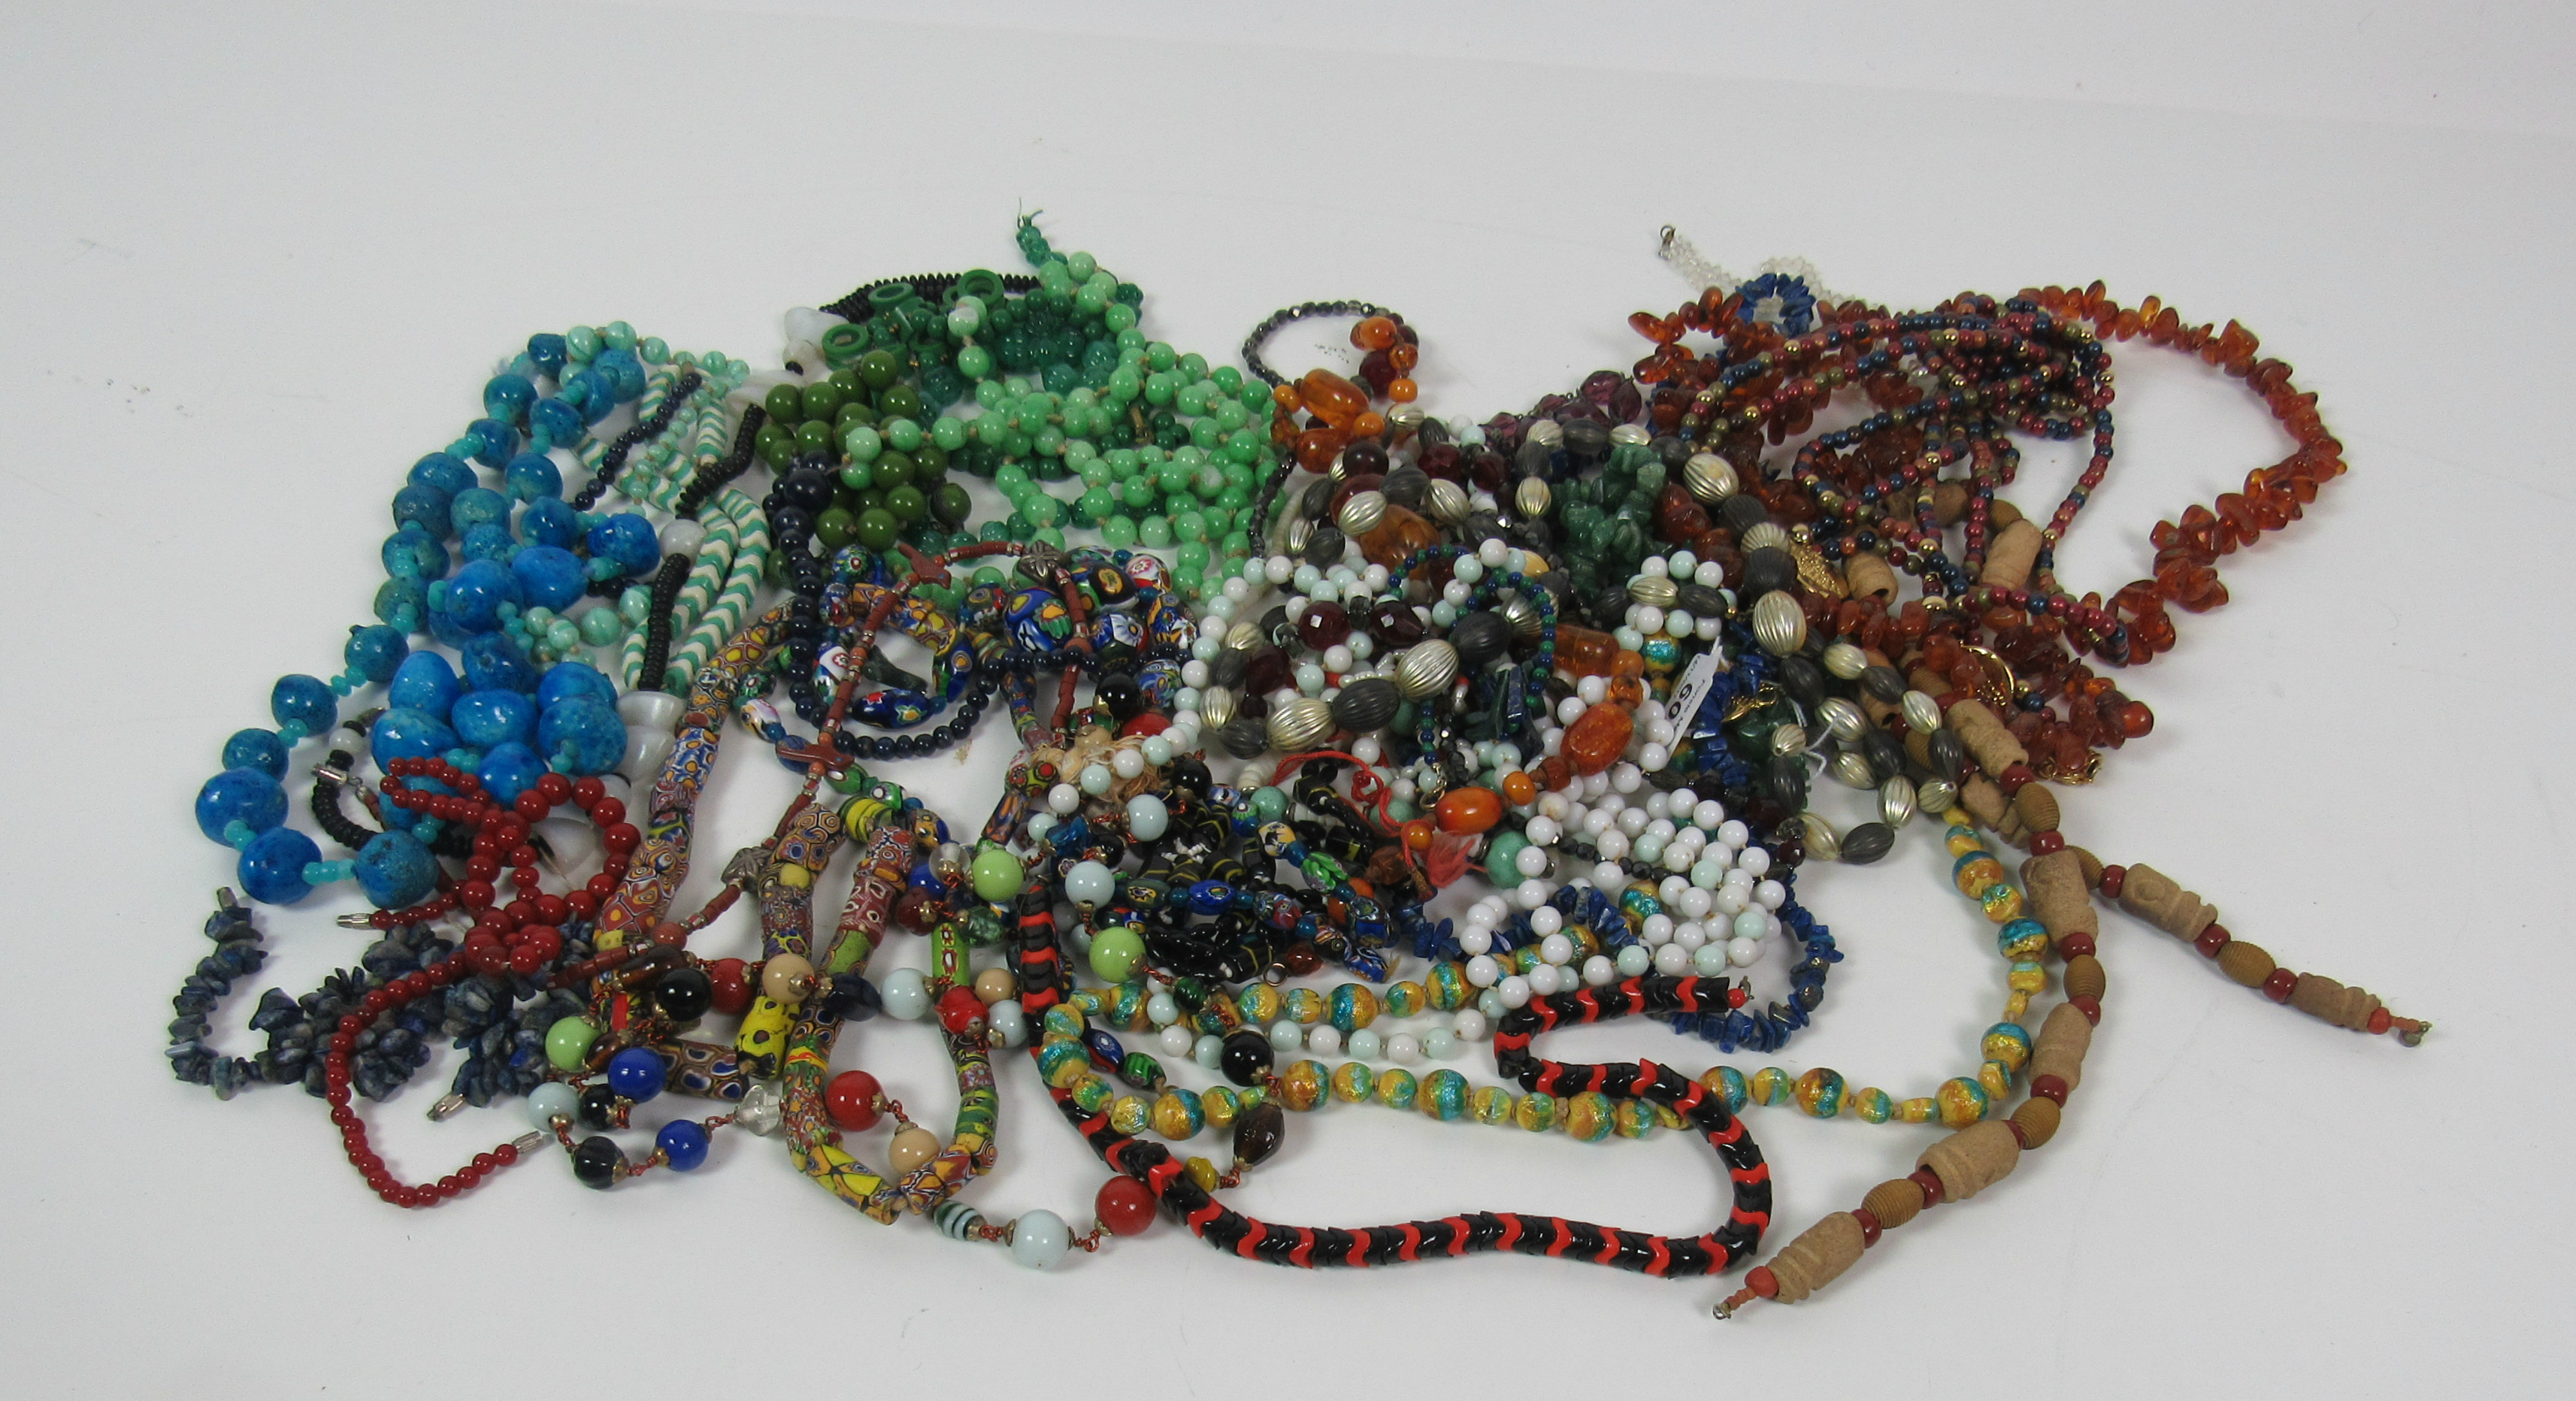 Lot 60A - Jewellery: A large box of colourful Costume Jewellery, over 30 bead necklaces,